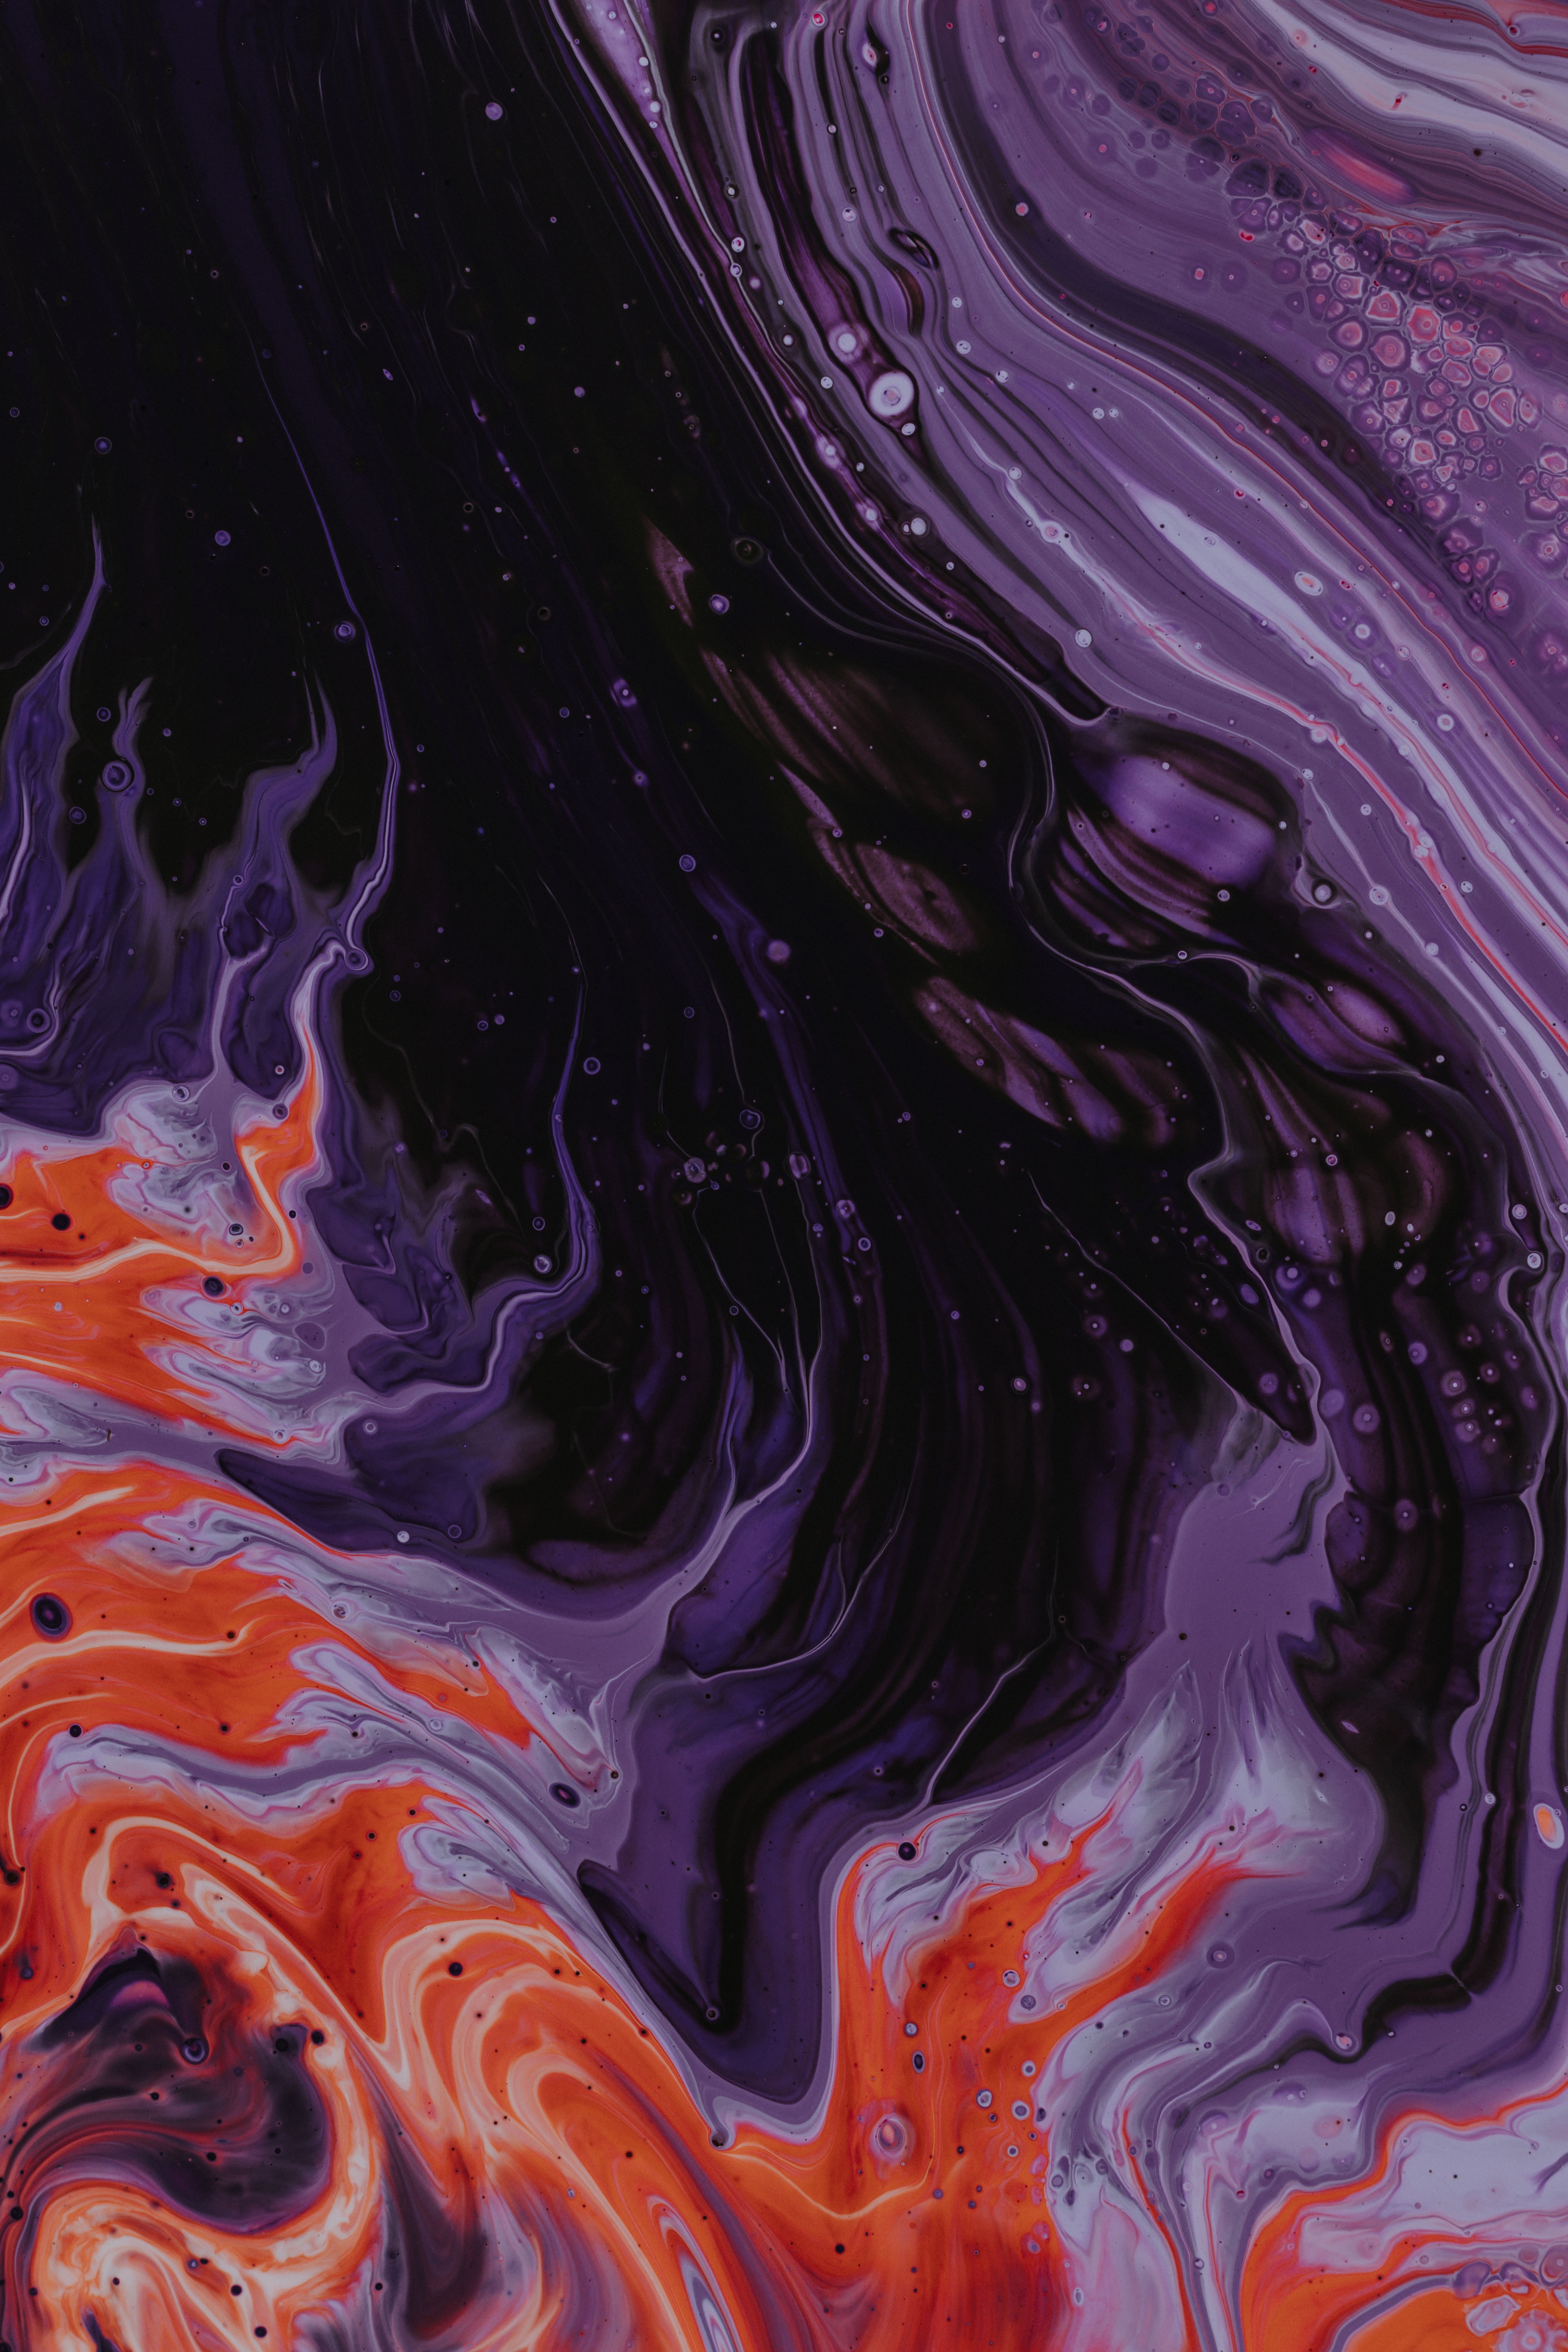 90176 download wallpaper Abstract, Paint, Mixing, Spread Out, Spread, Liquid, Acrylic Paints screensavers and pictures for free